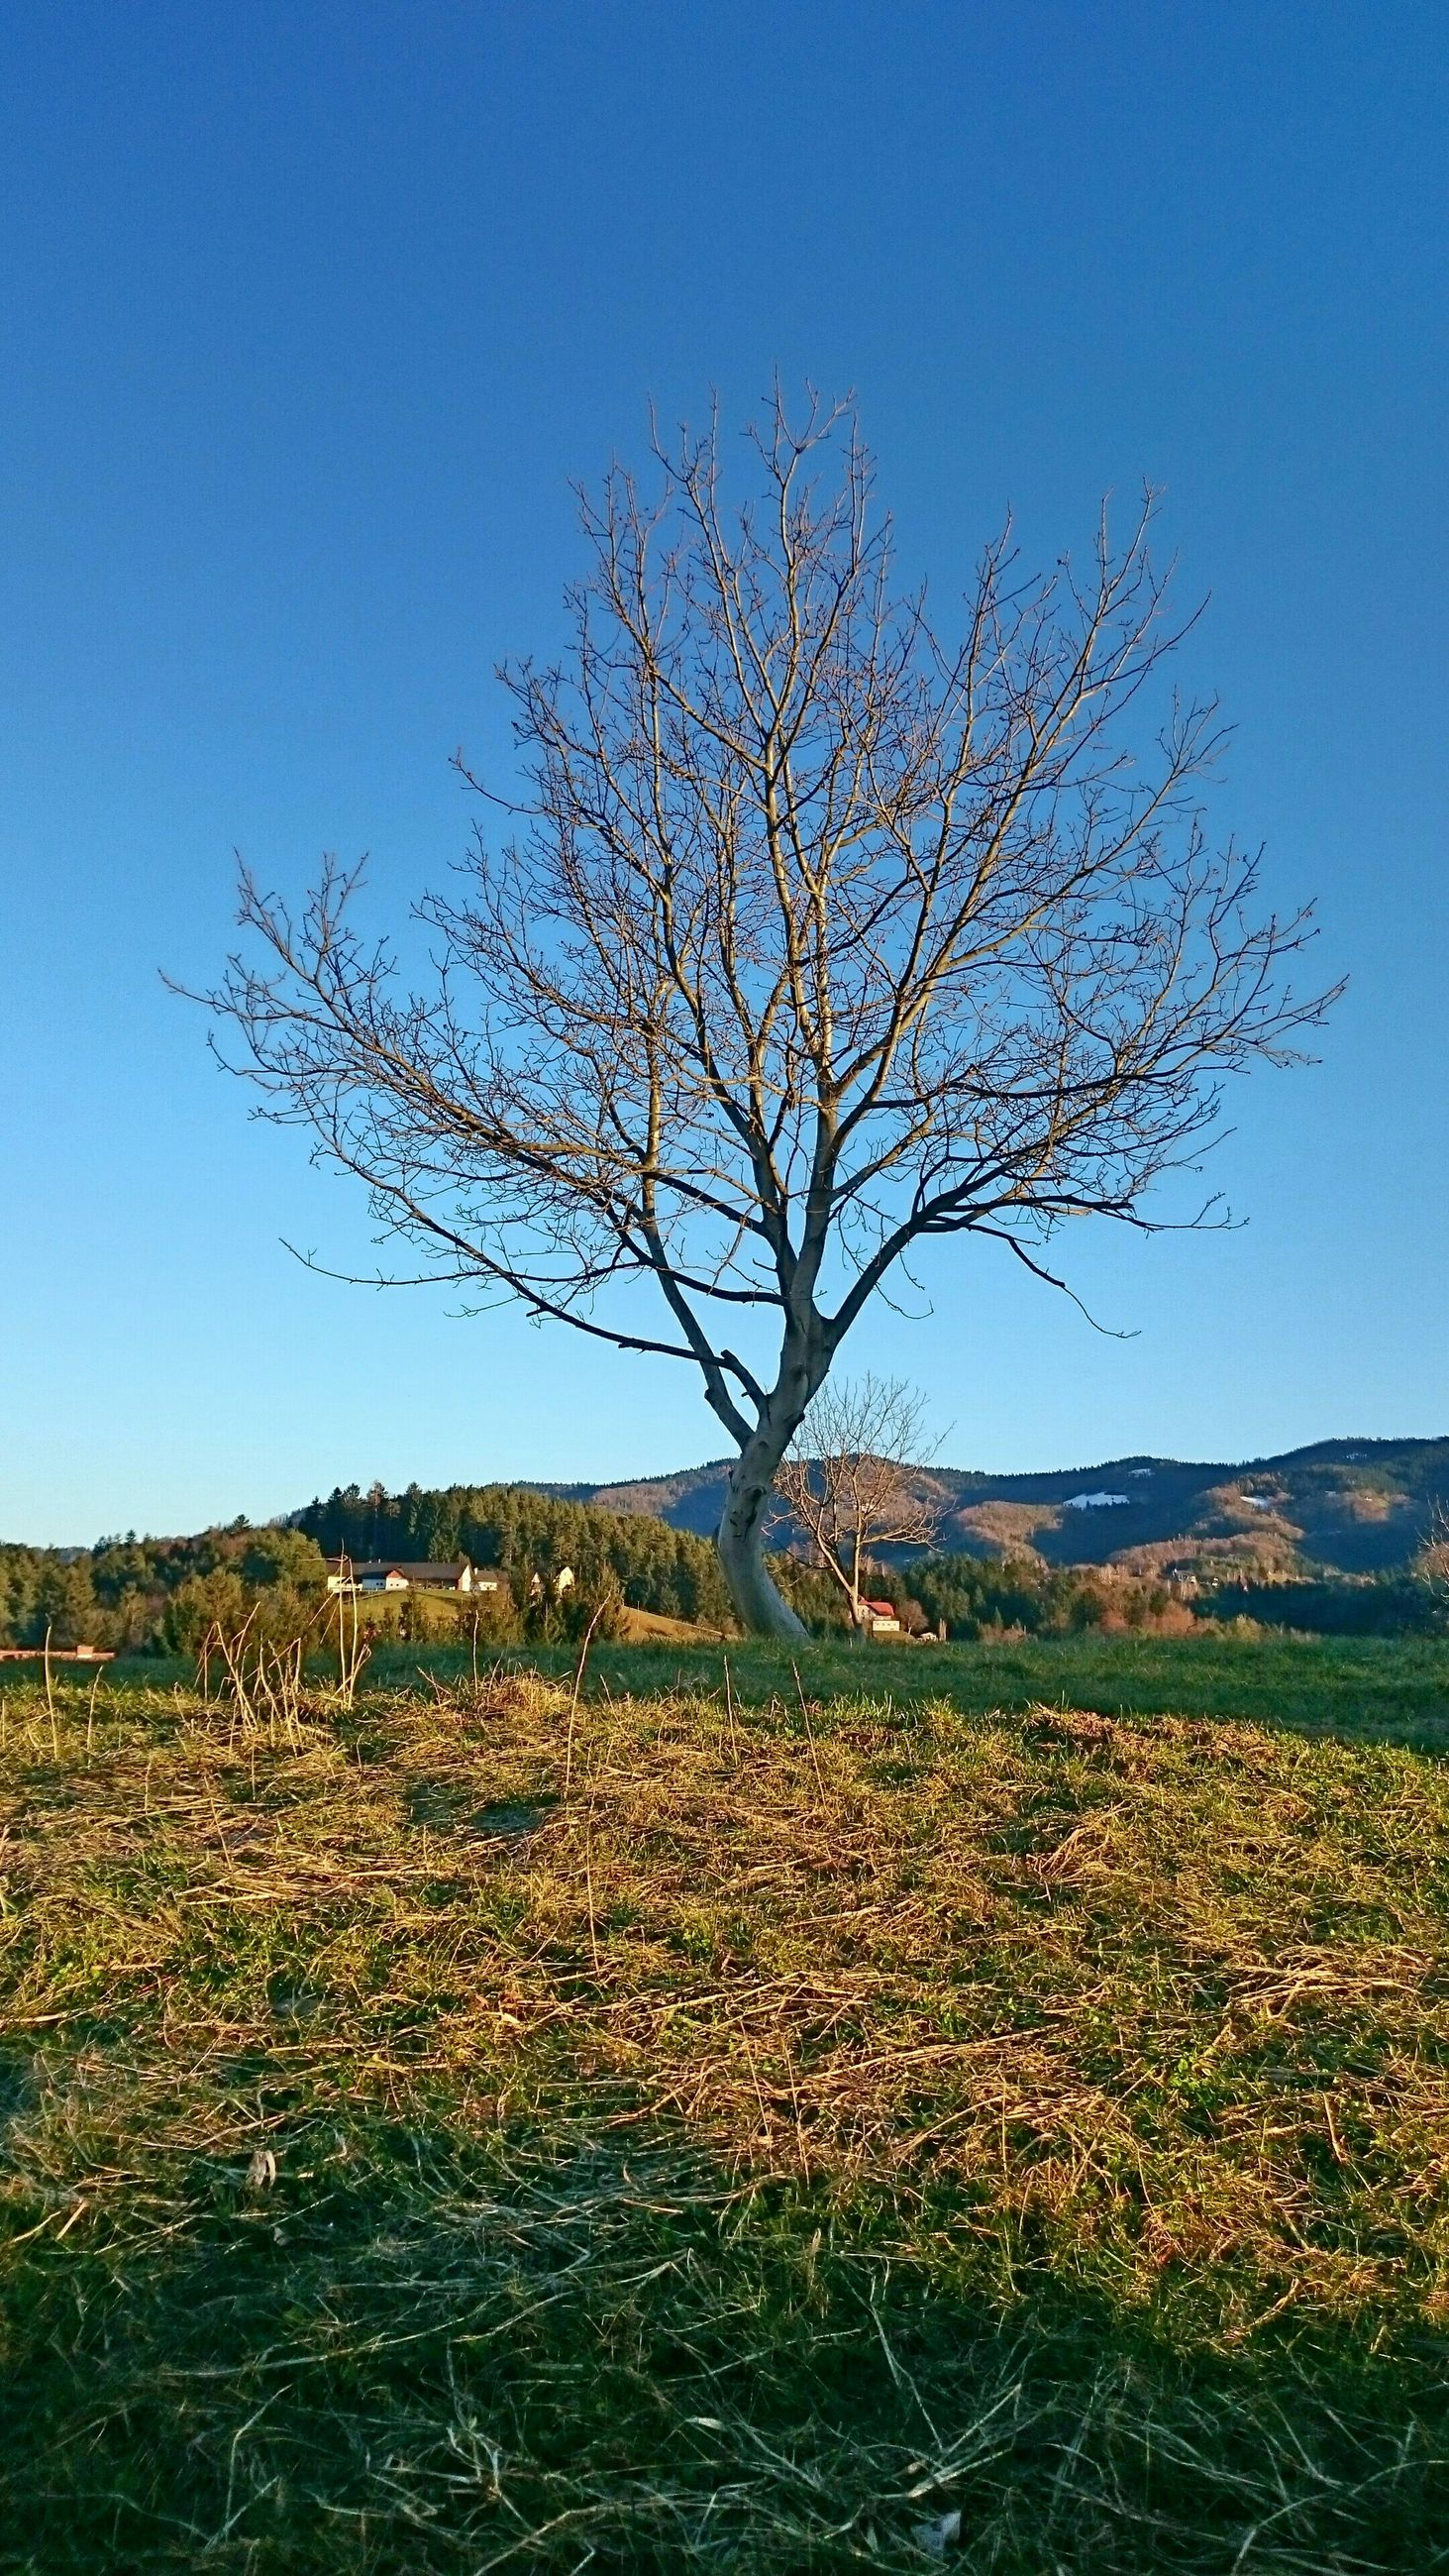 clear sky, landscape, tranquil scene, field, tranquility, beauty in nature, scenics, nature, blue, tree, growth, rural scene, copy space, bare tree, horizon over land, agriculture, non-urban scene, flower, grass, branch